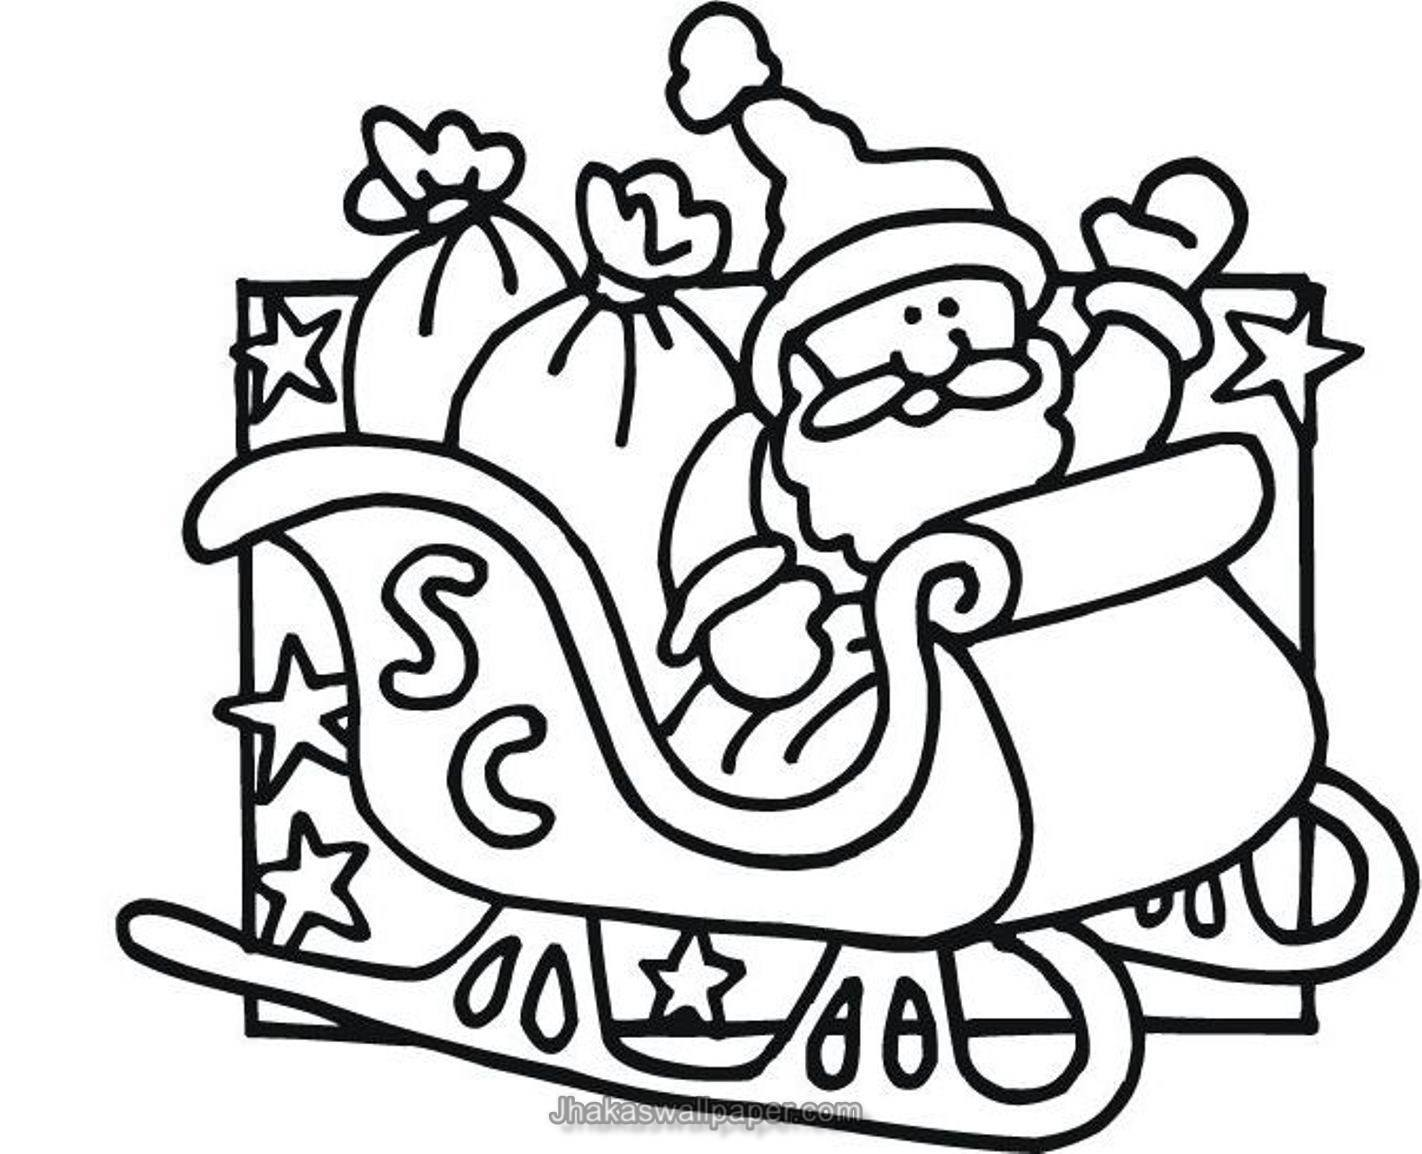 Santa Claus Coloring Pages Free With 42 Inspiring Photo Of Page